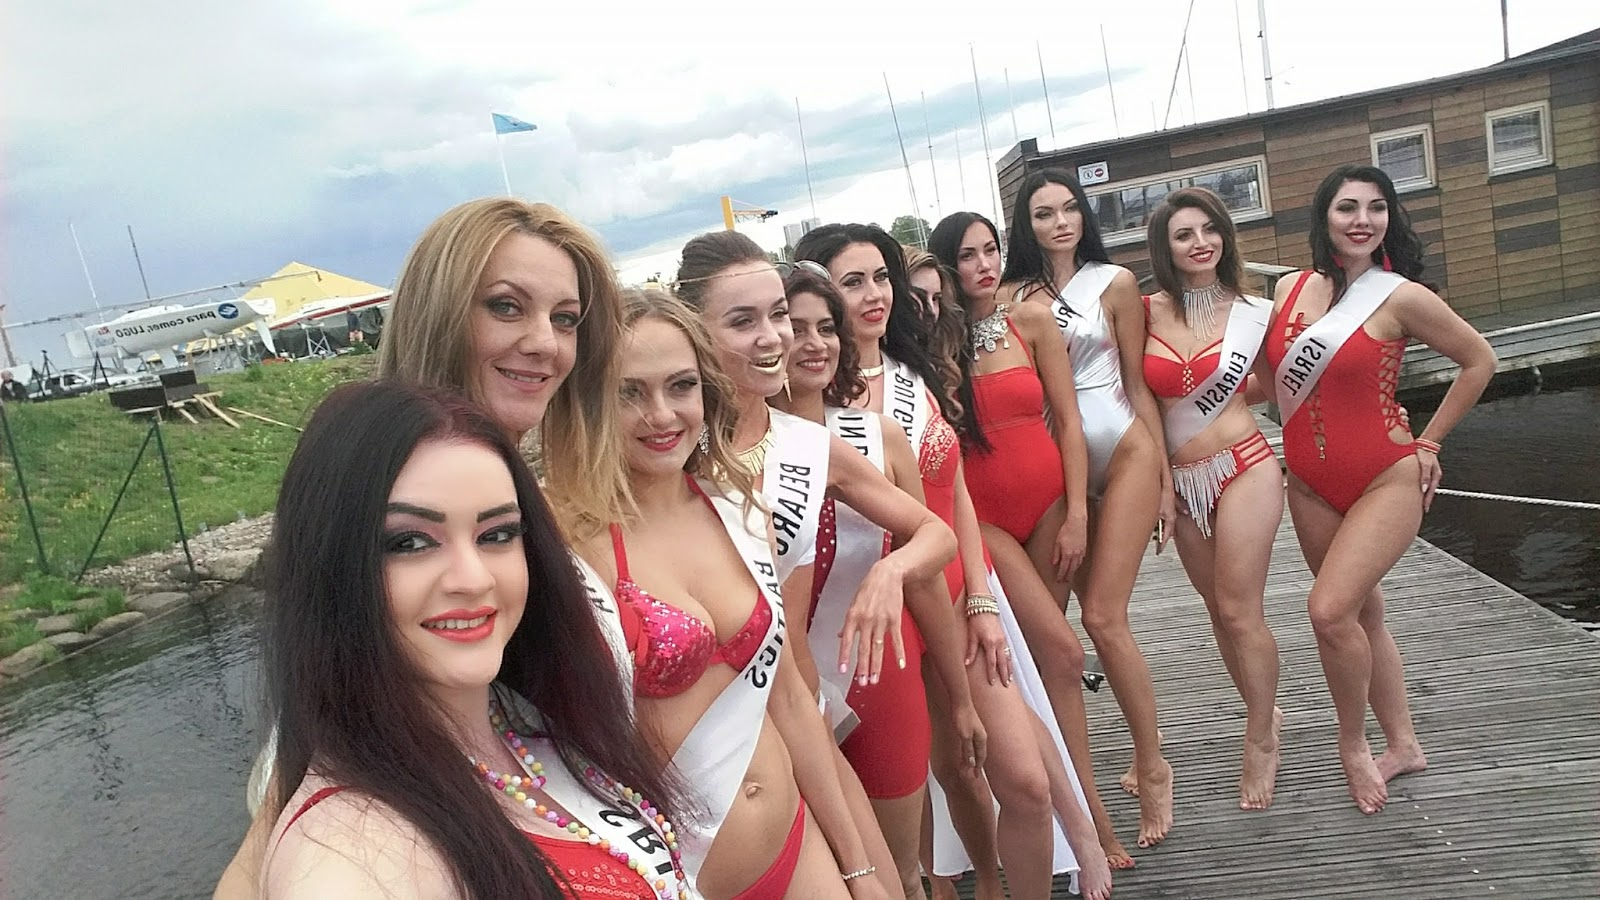 Oshadhi Hewamadduma crowned Mrs. Top 2017 in Latvia